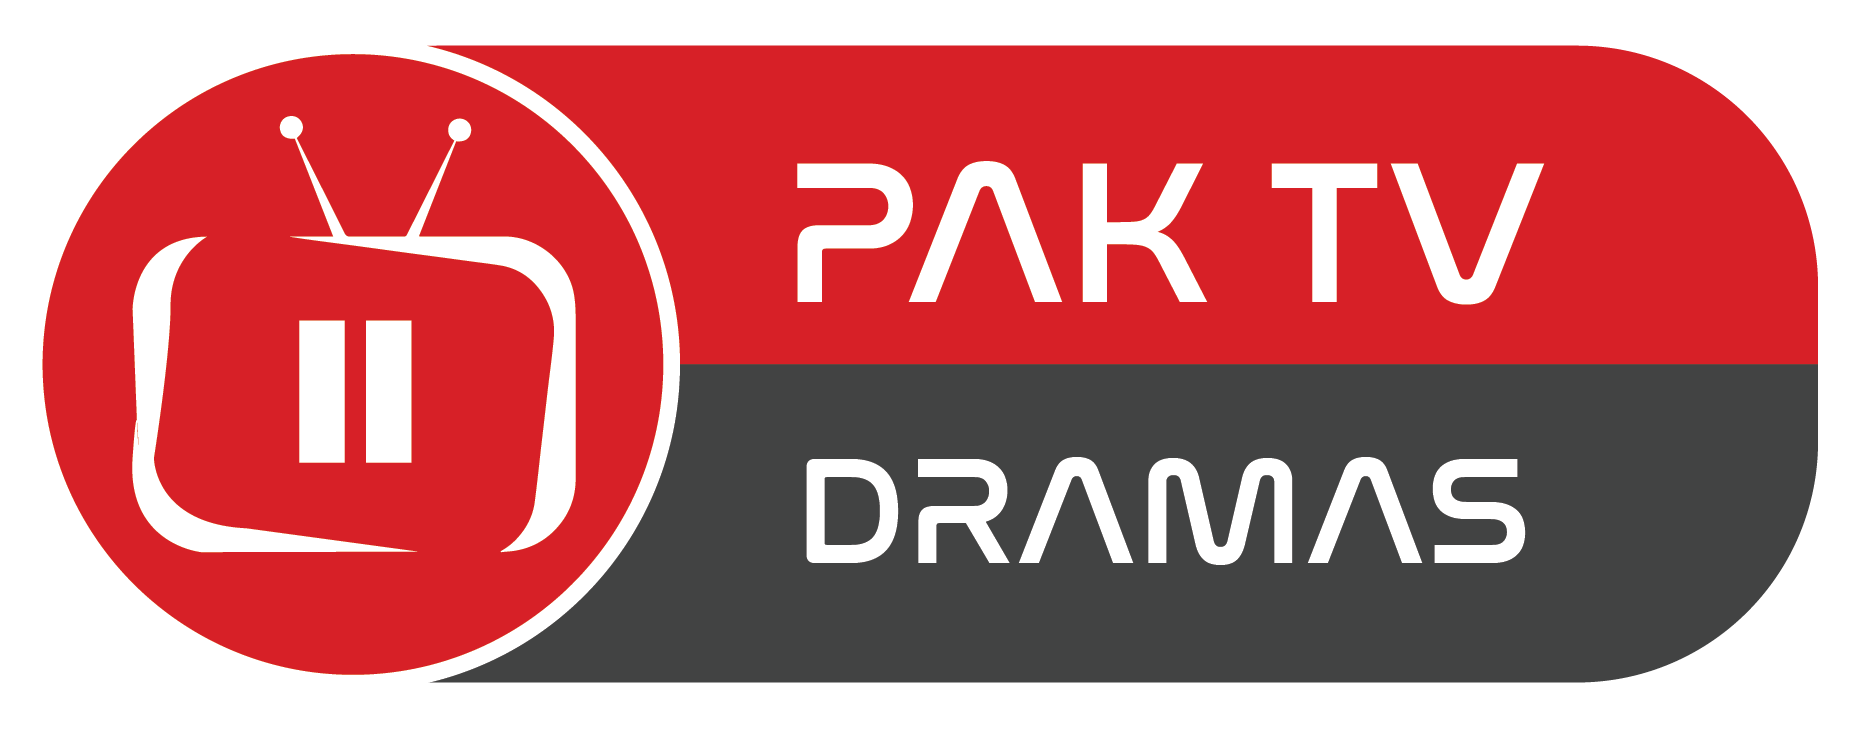 Watch Pakistani TV Dramas | Drama Serial | Paktvdramas.pk